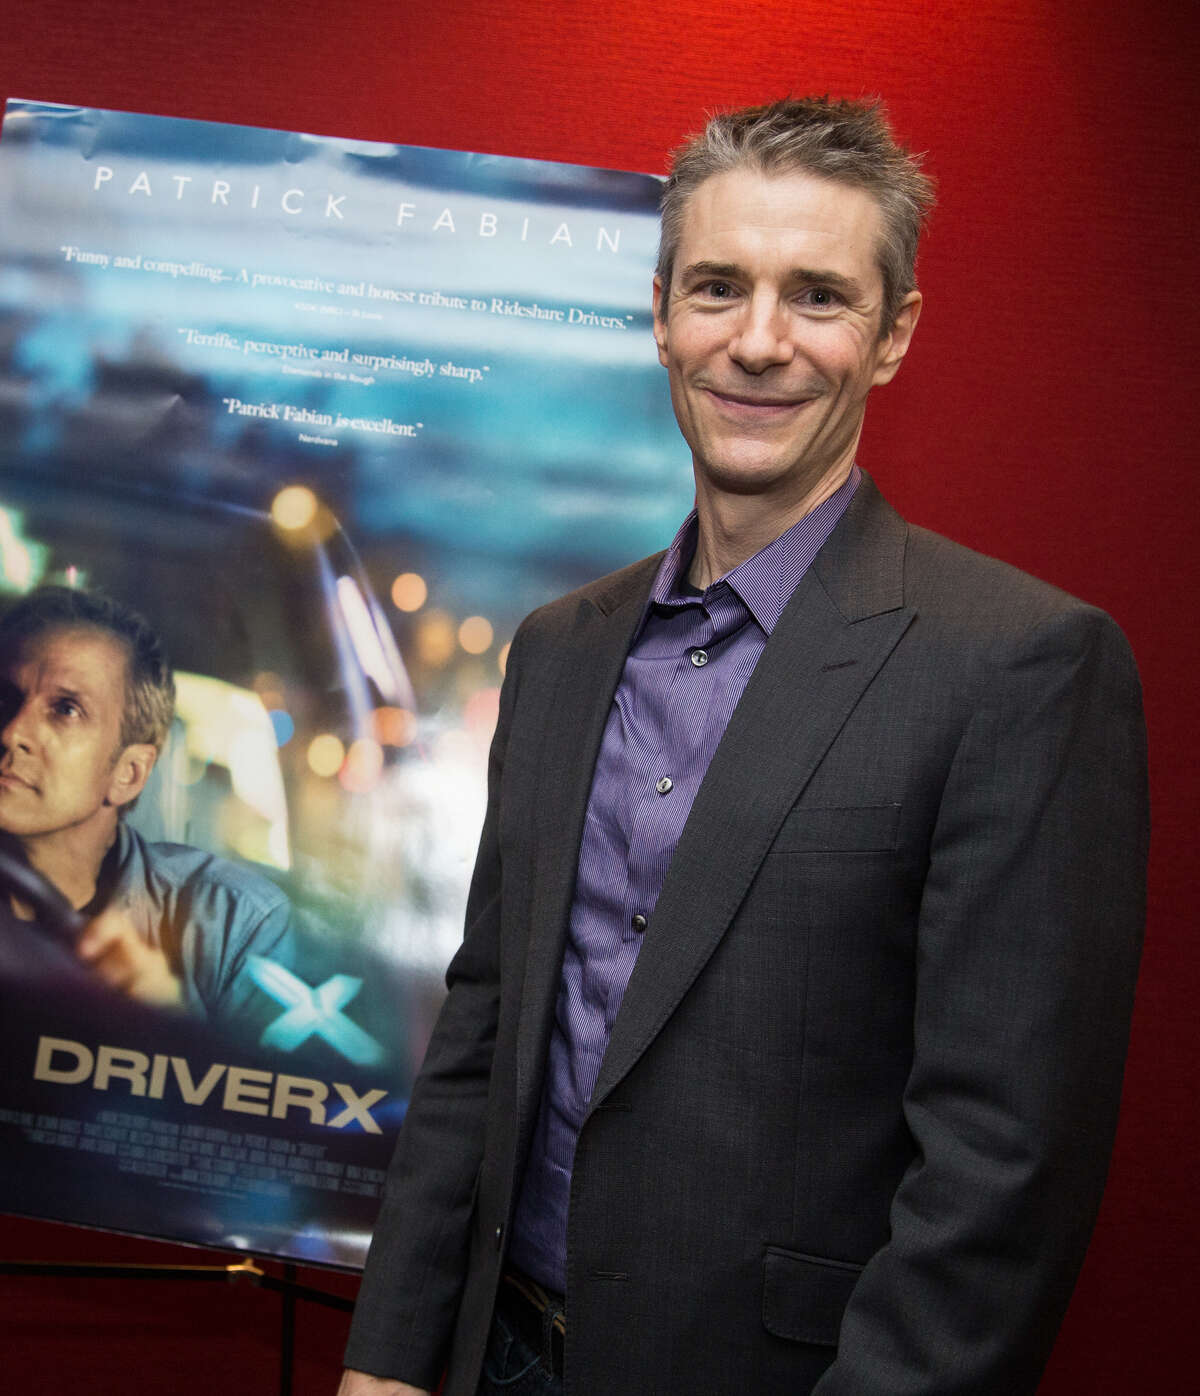 Producer Mark Stolaroff in front of poster for his film